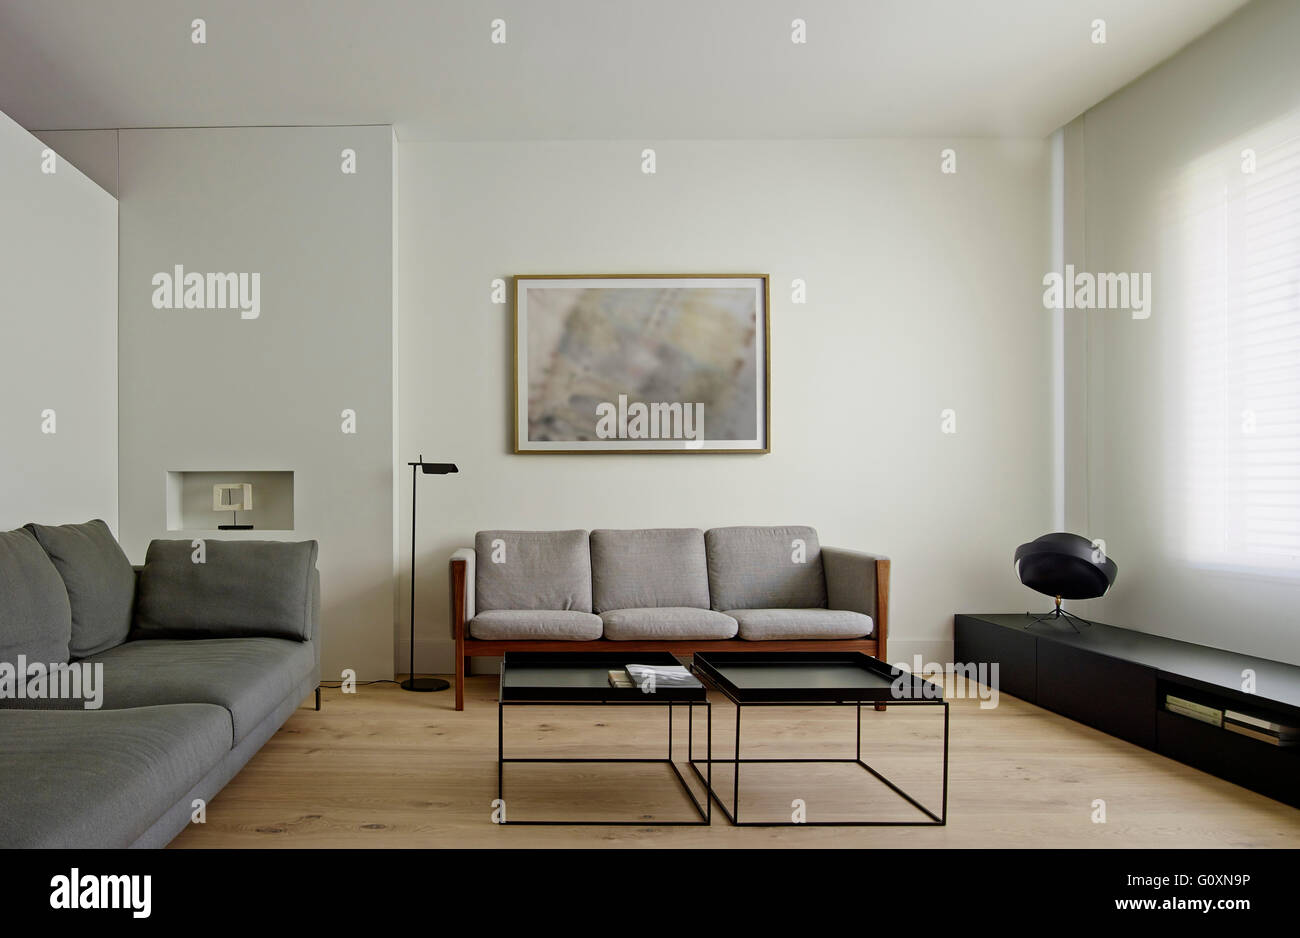 Beautiful Spacious Contemporary Living Room With Grey Modern Couches And Painting On  Wall.   Stock Image